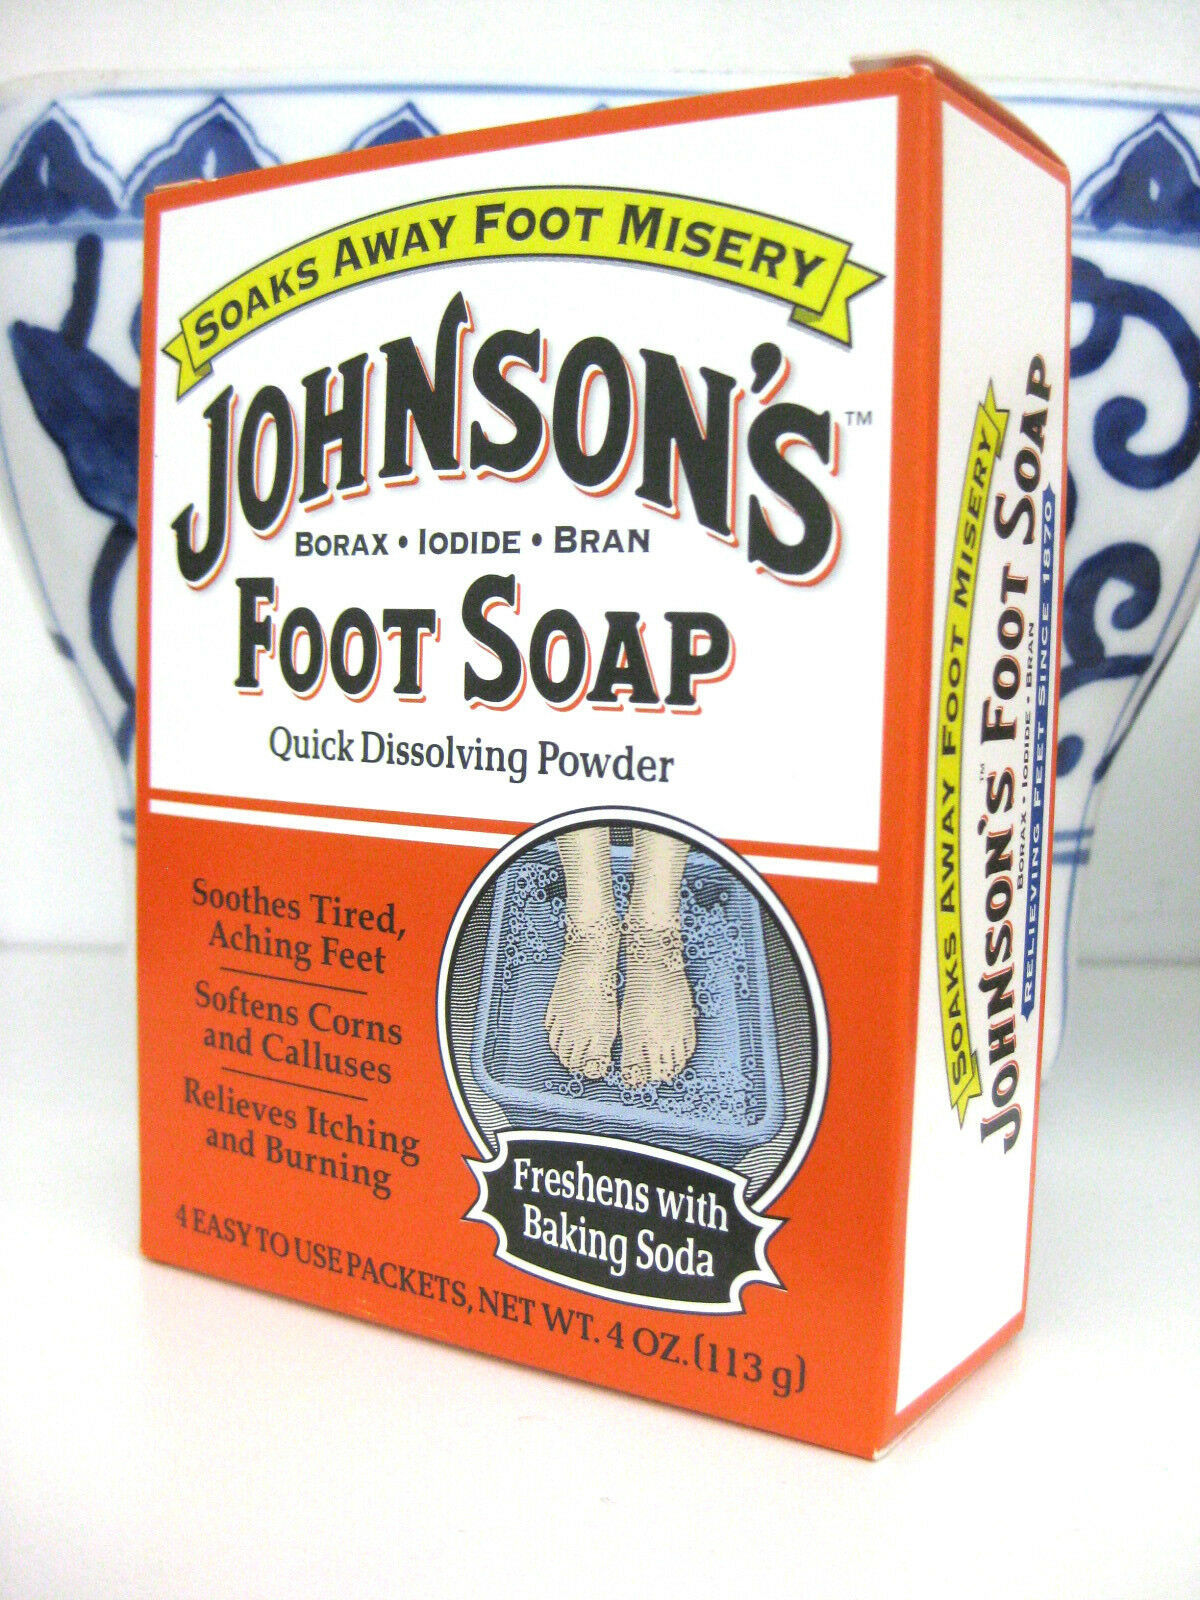 JOHNSON'S Foot Soap Soak Powder Borax, Iodide, & Bran Packets 4 Each image 1